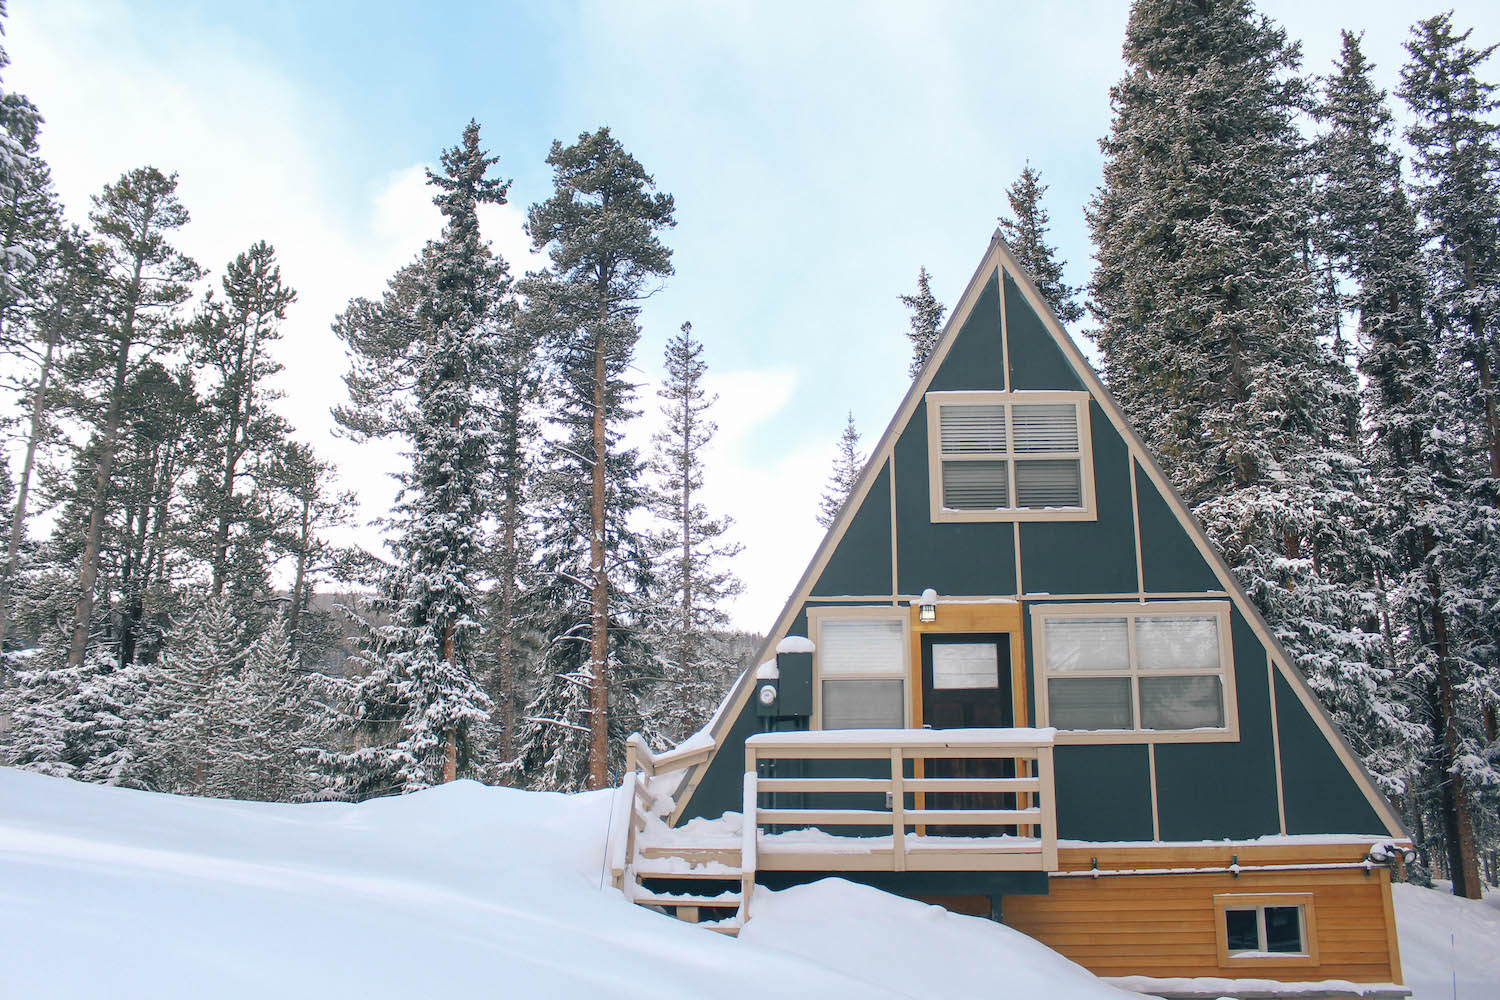 48 hours in breckenridge co peachfully chic for Breckenridge cottages